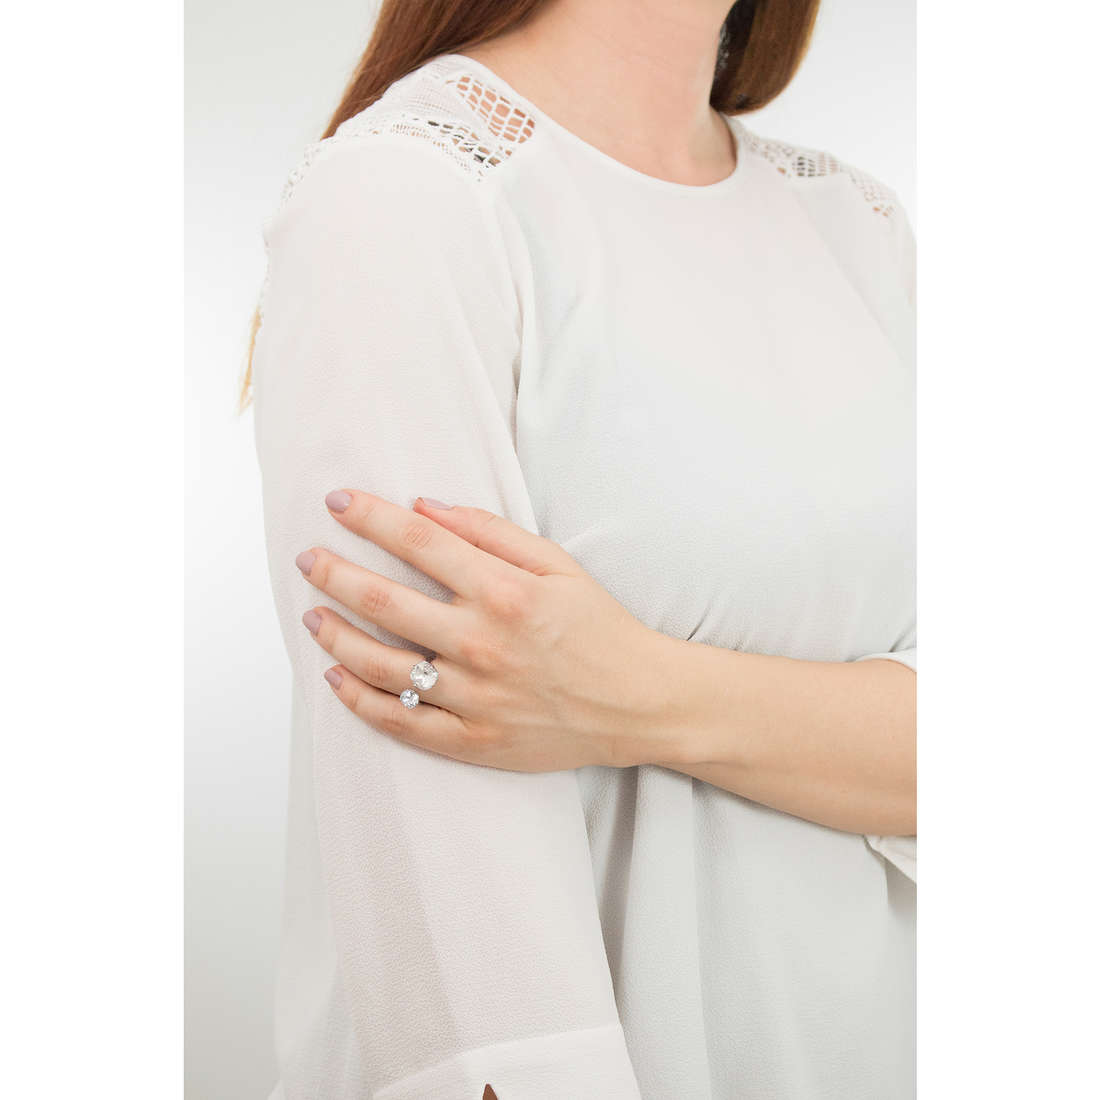 Brosway bagues Affinity femme BFF37B indosso